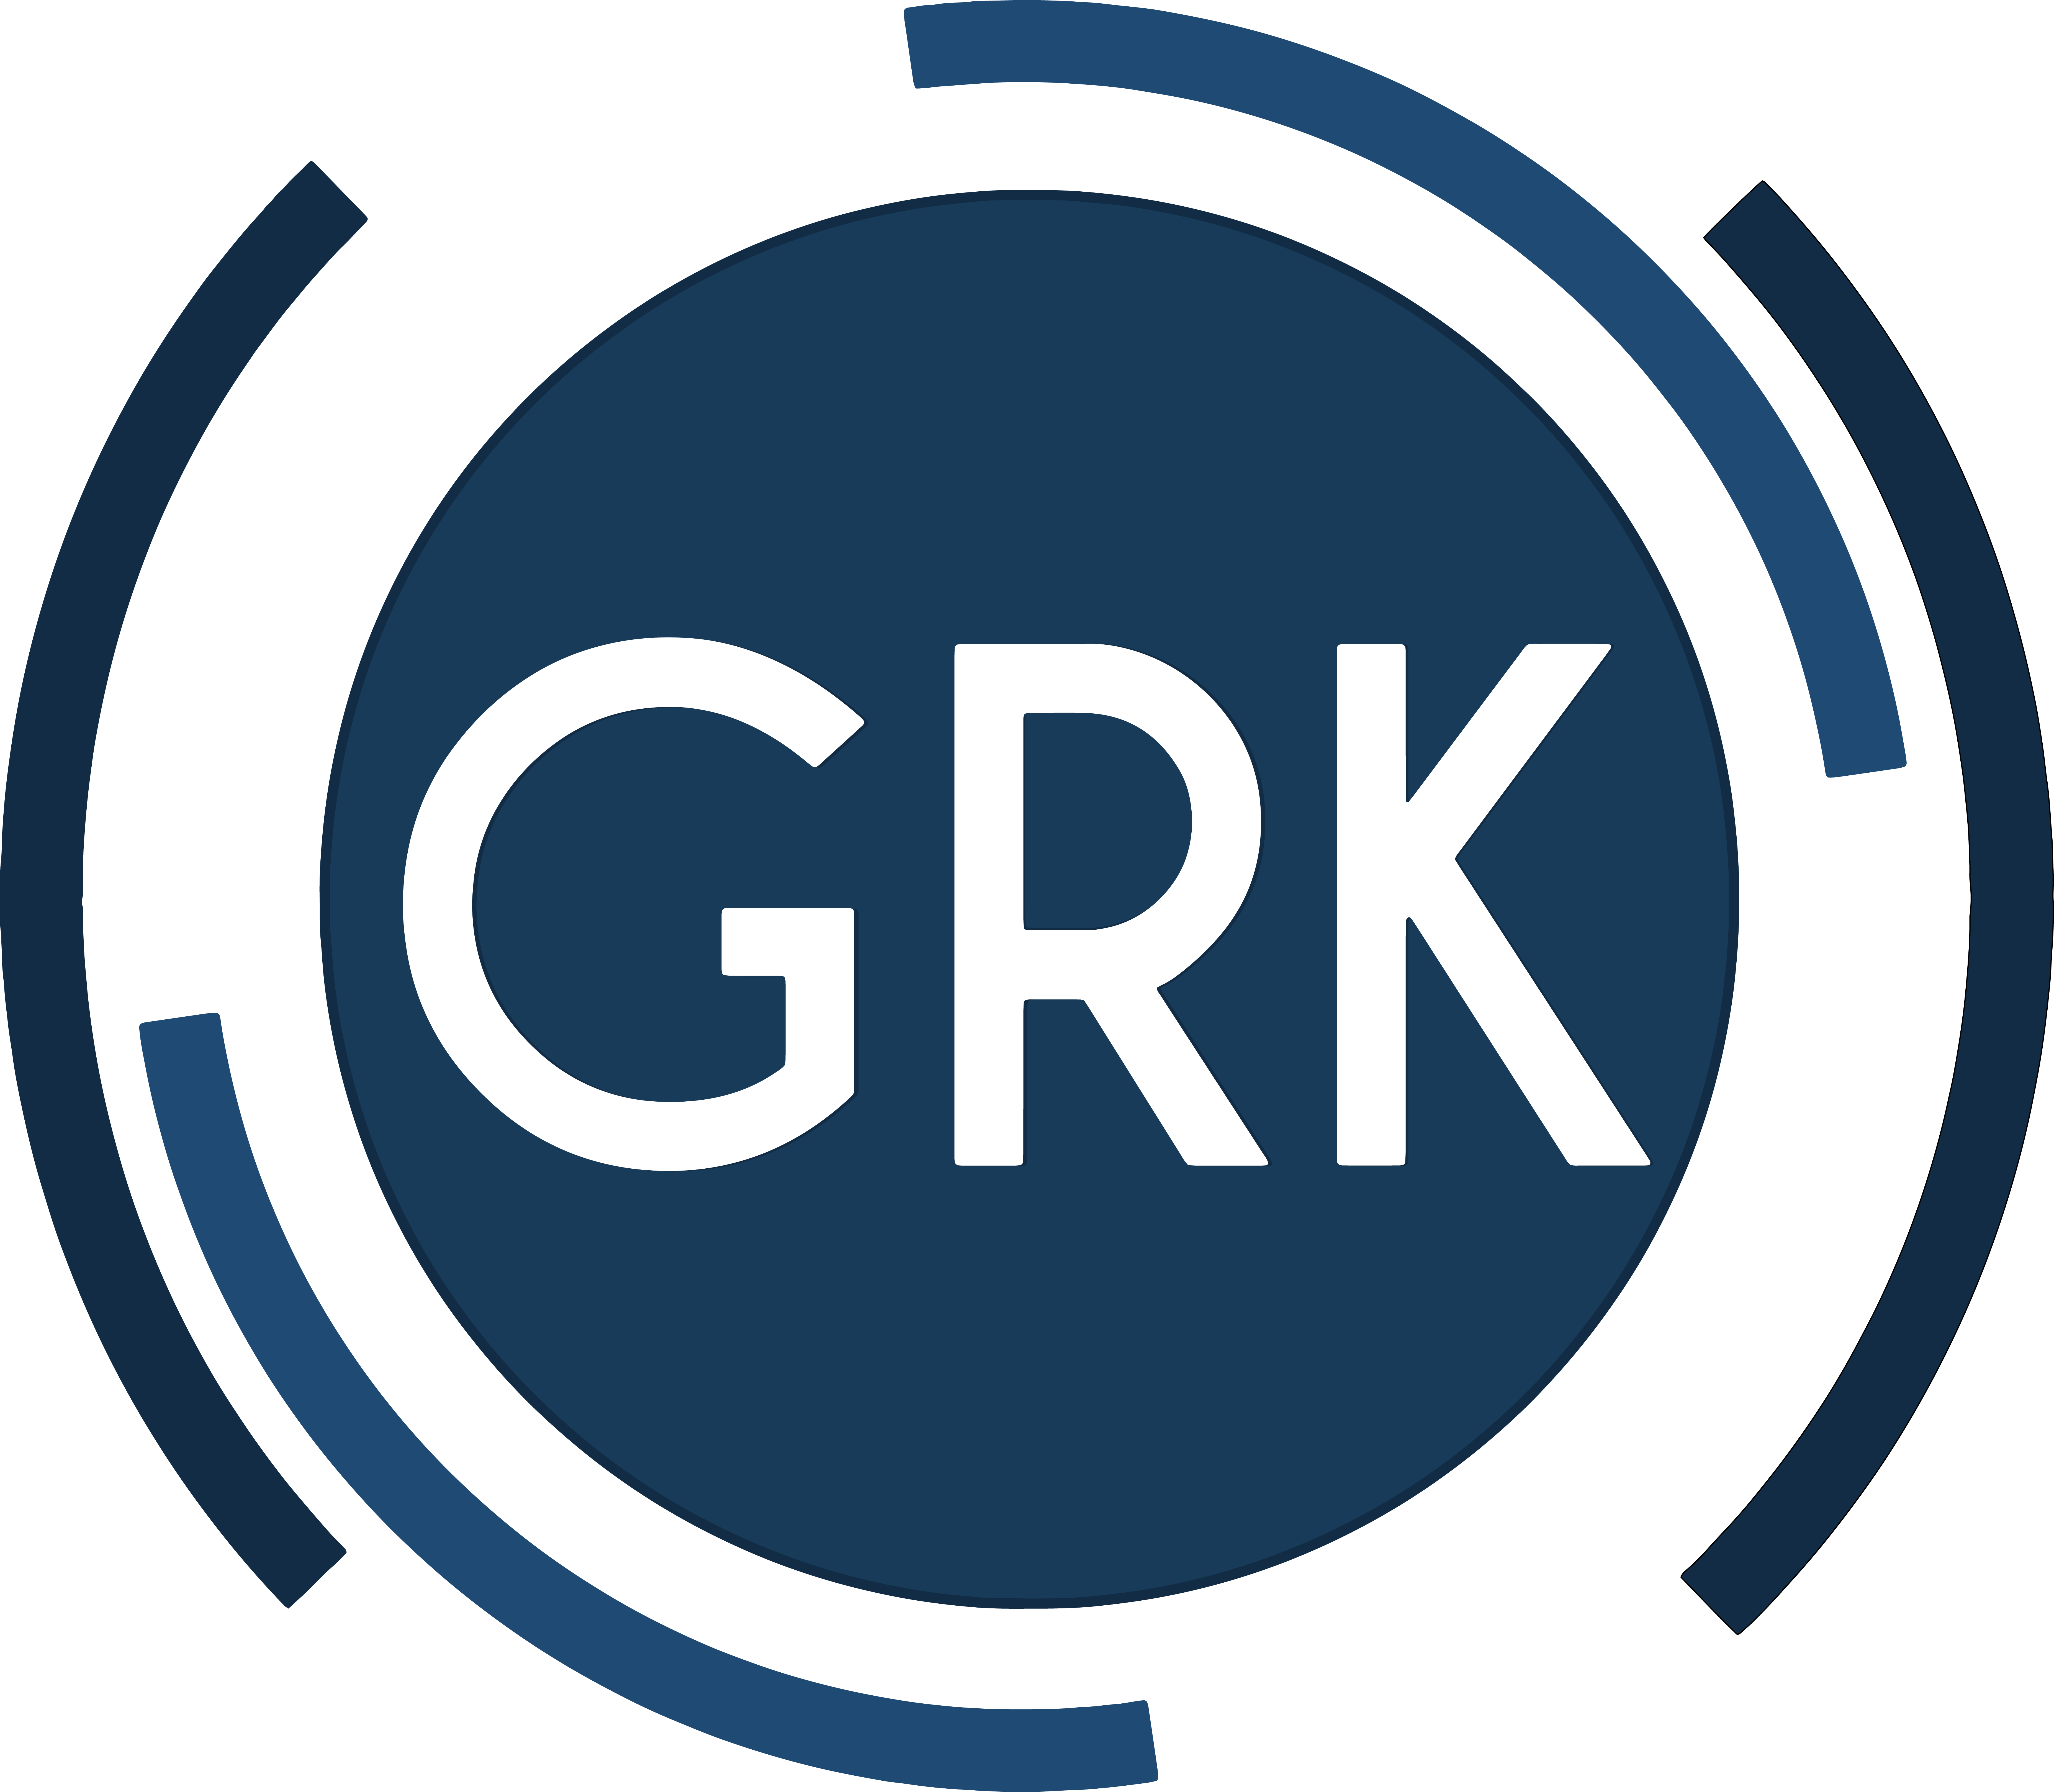 GRK – The Feelgood Station